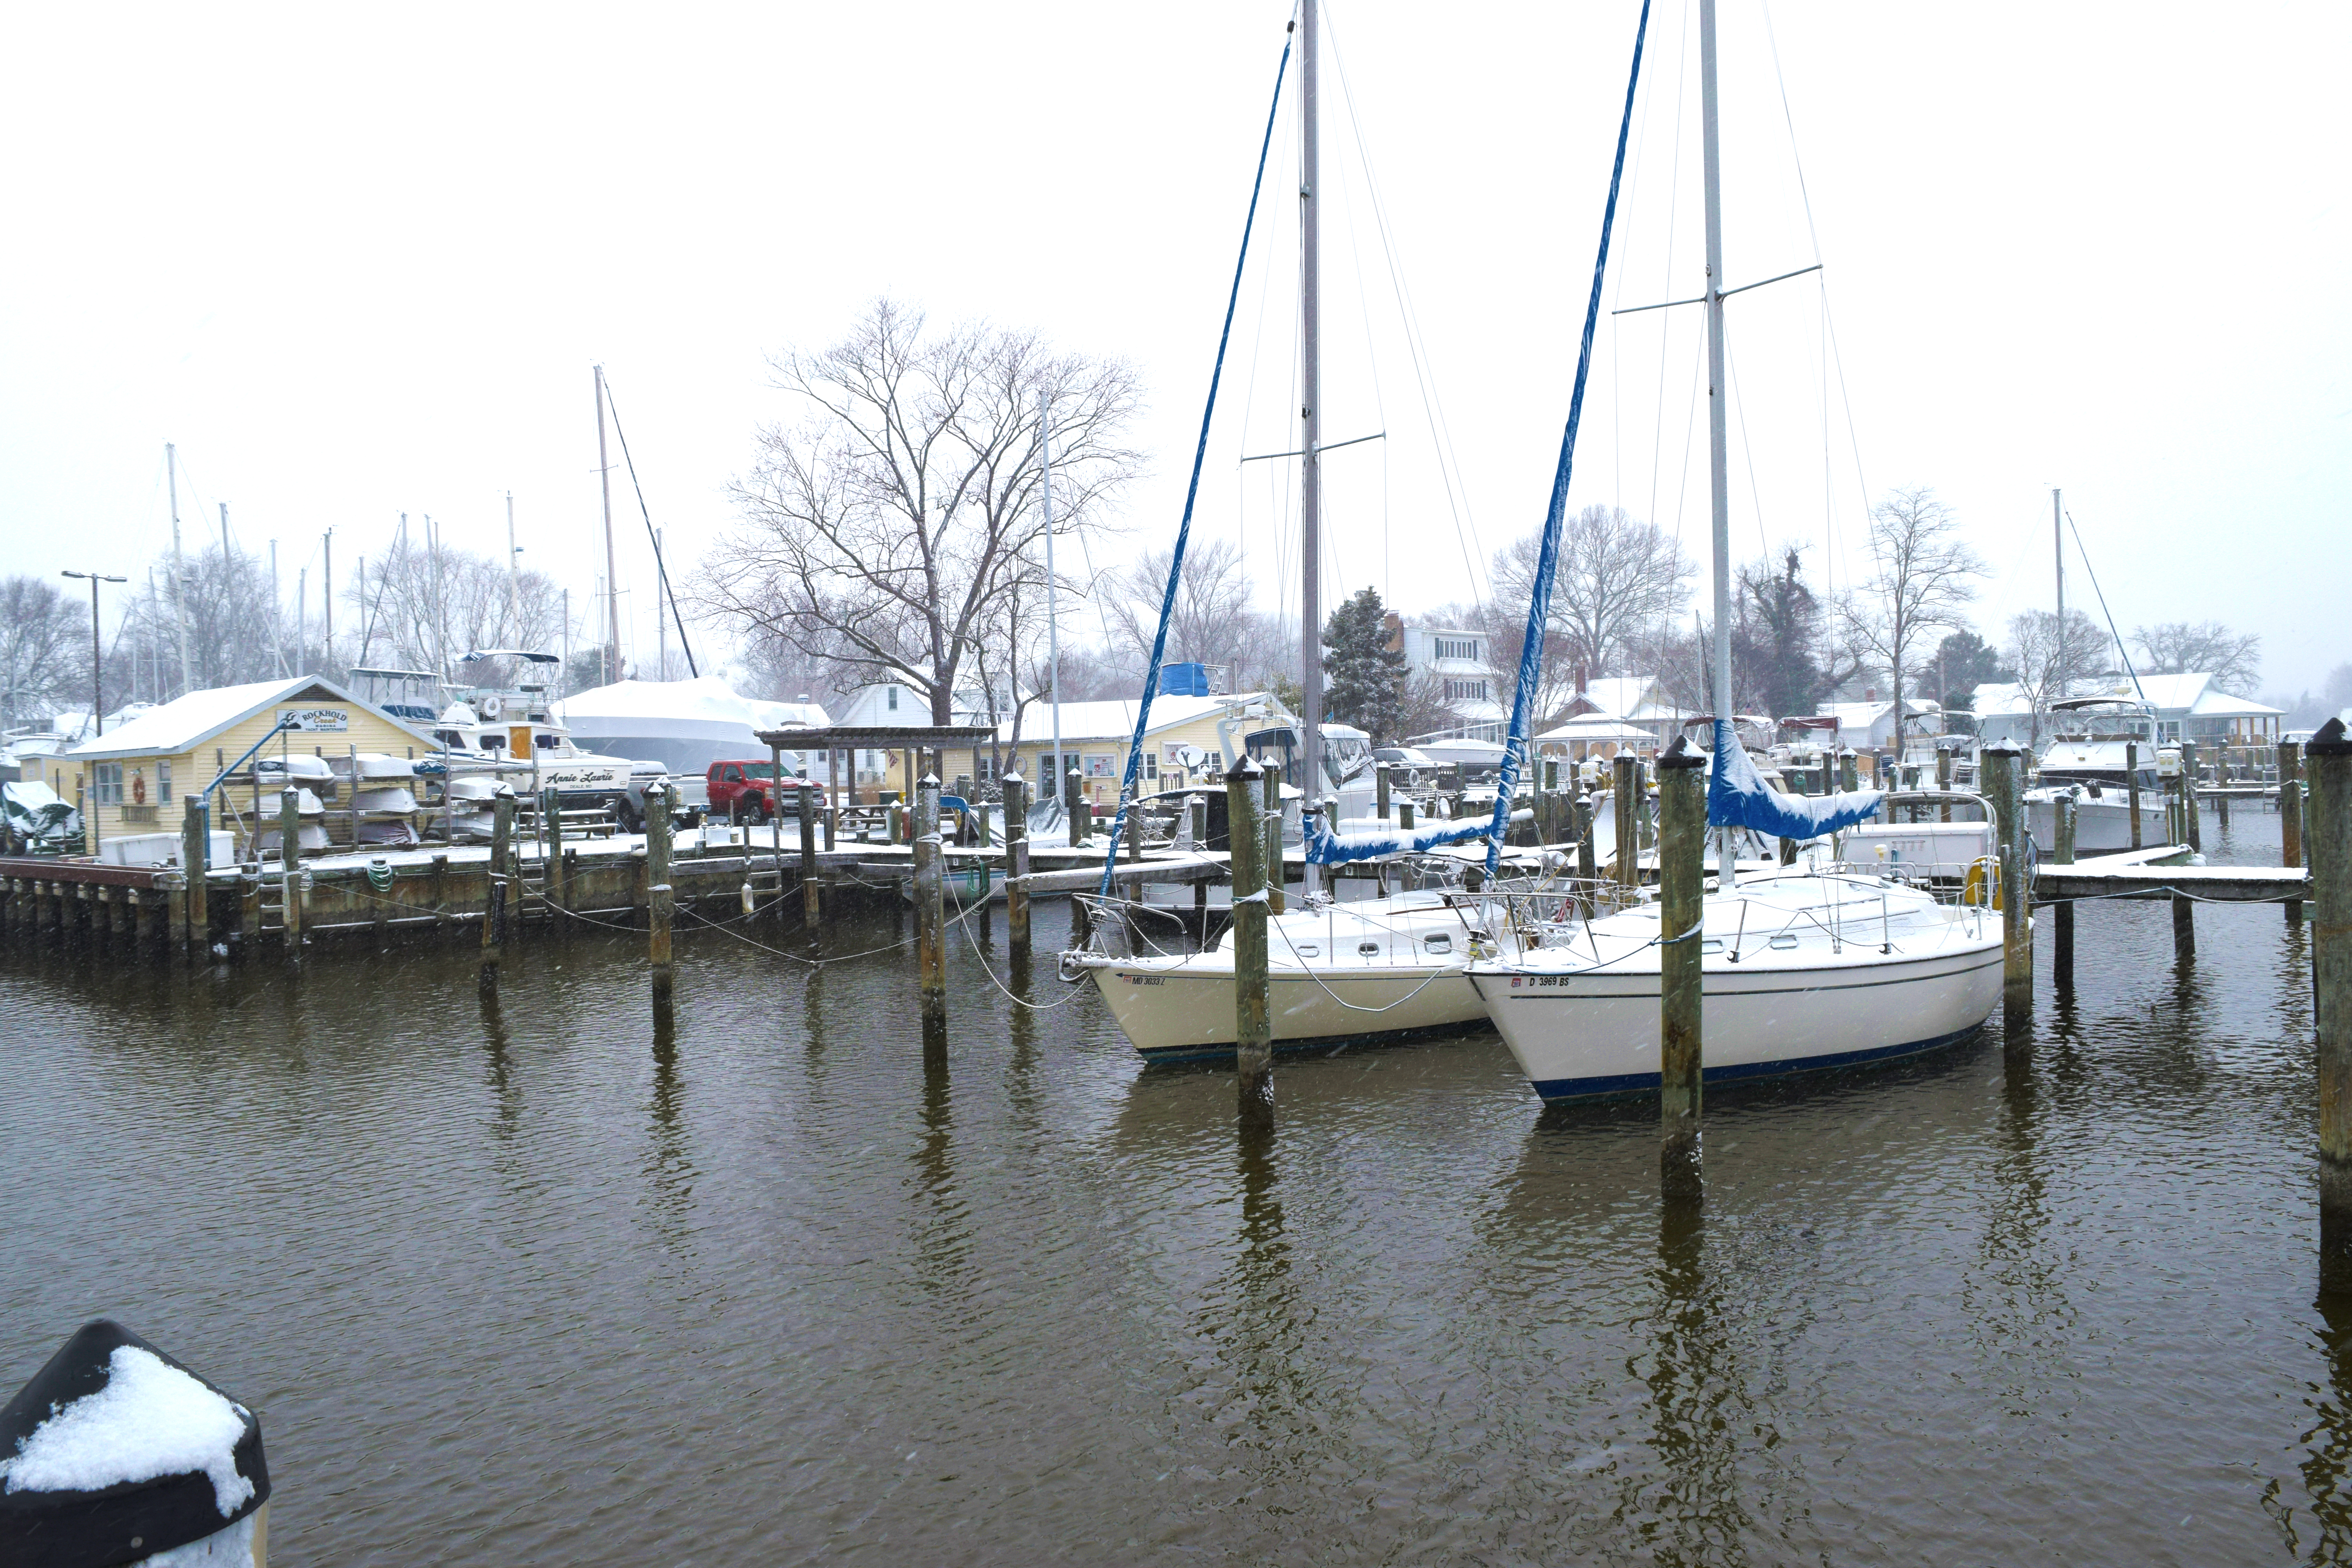 New Owners at Rockhold Creek Marina Lease Operation to